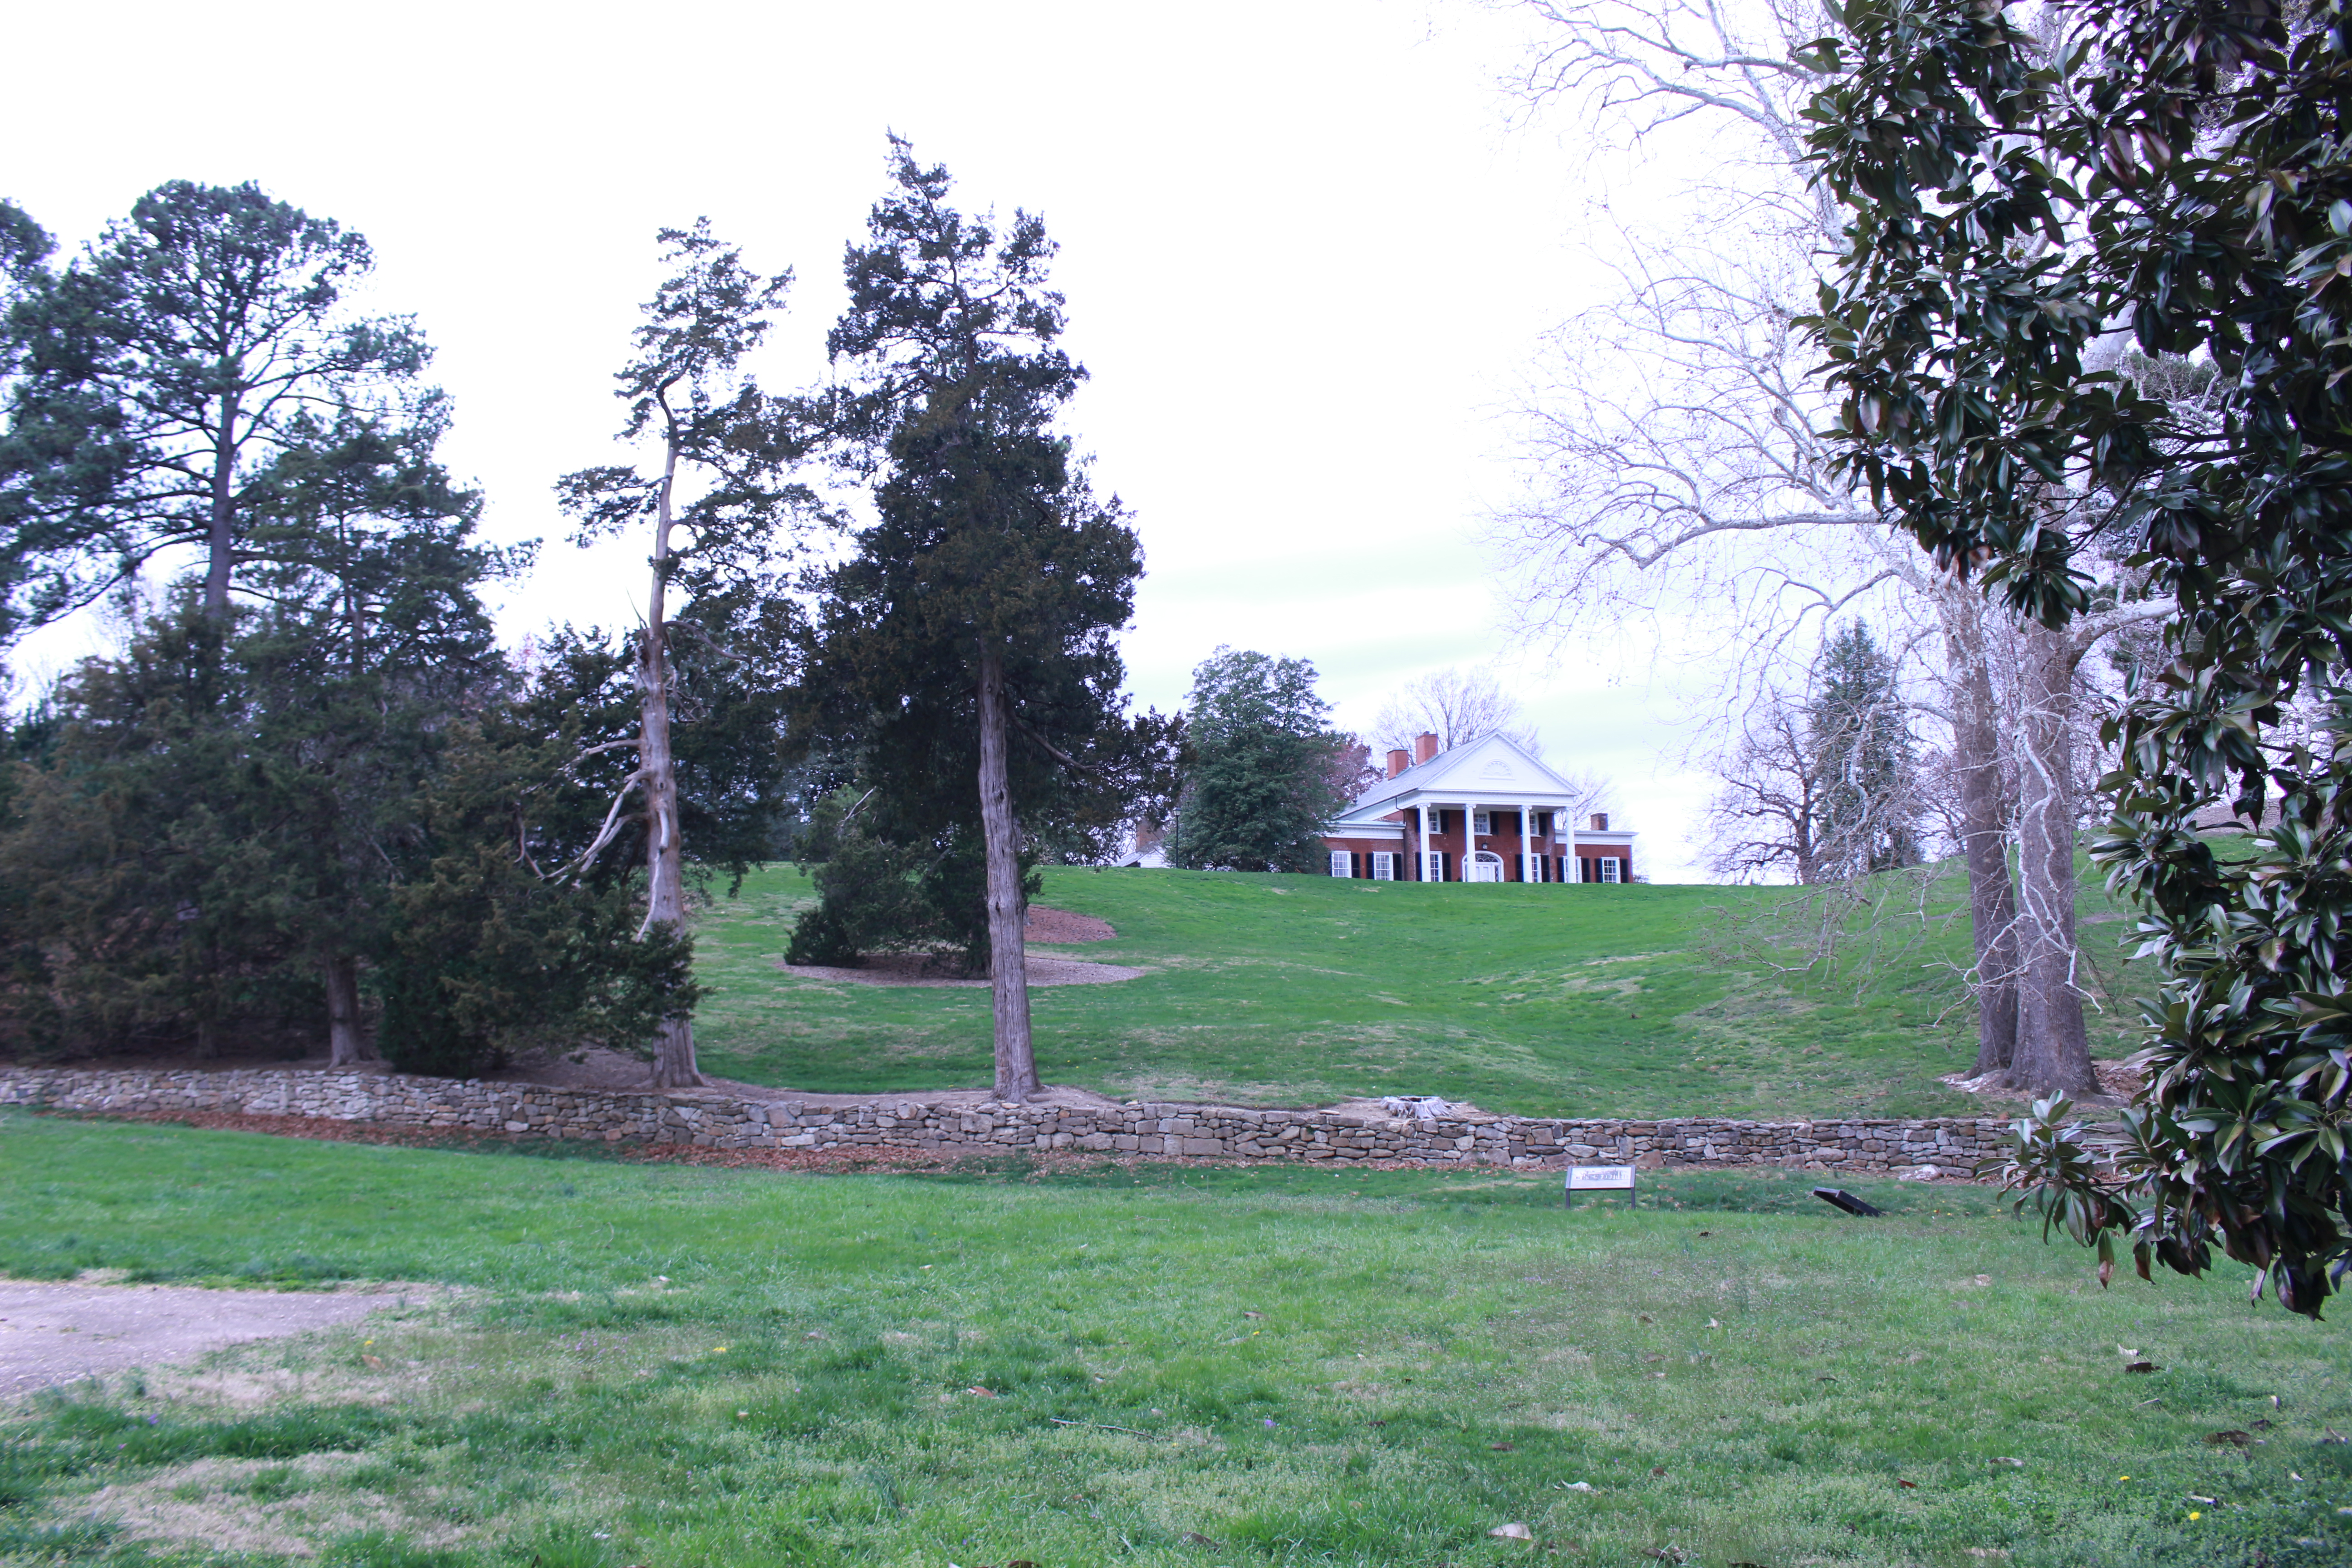 Pictured is Brompton viewed from the Sunken Road trail